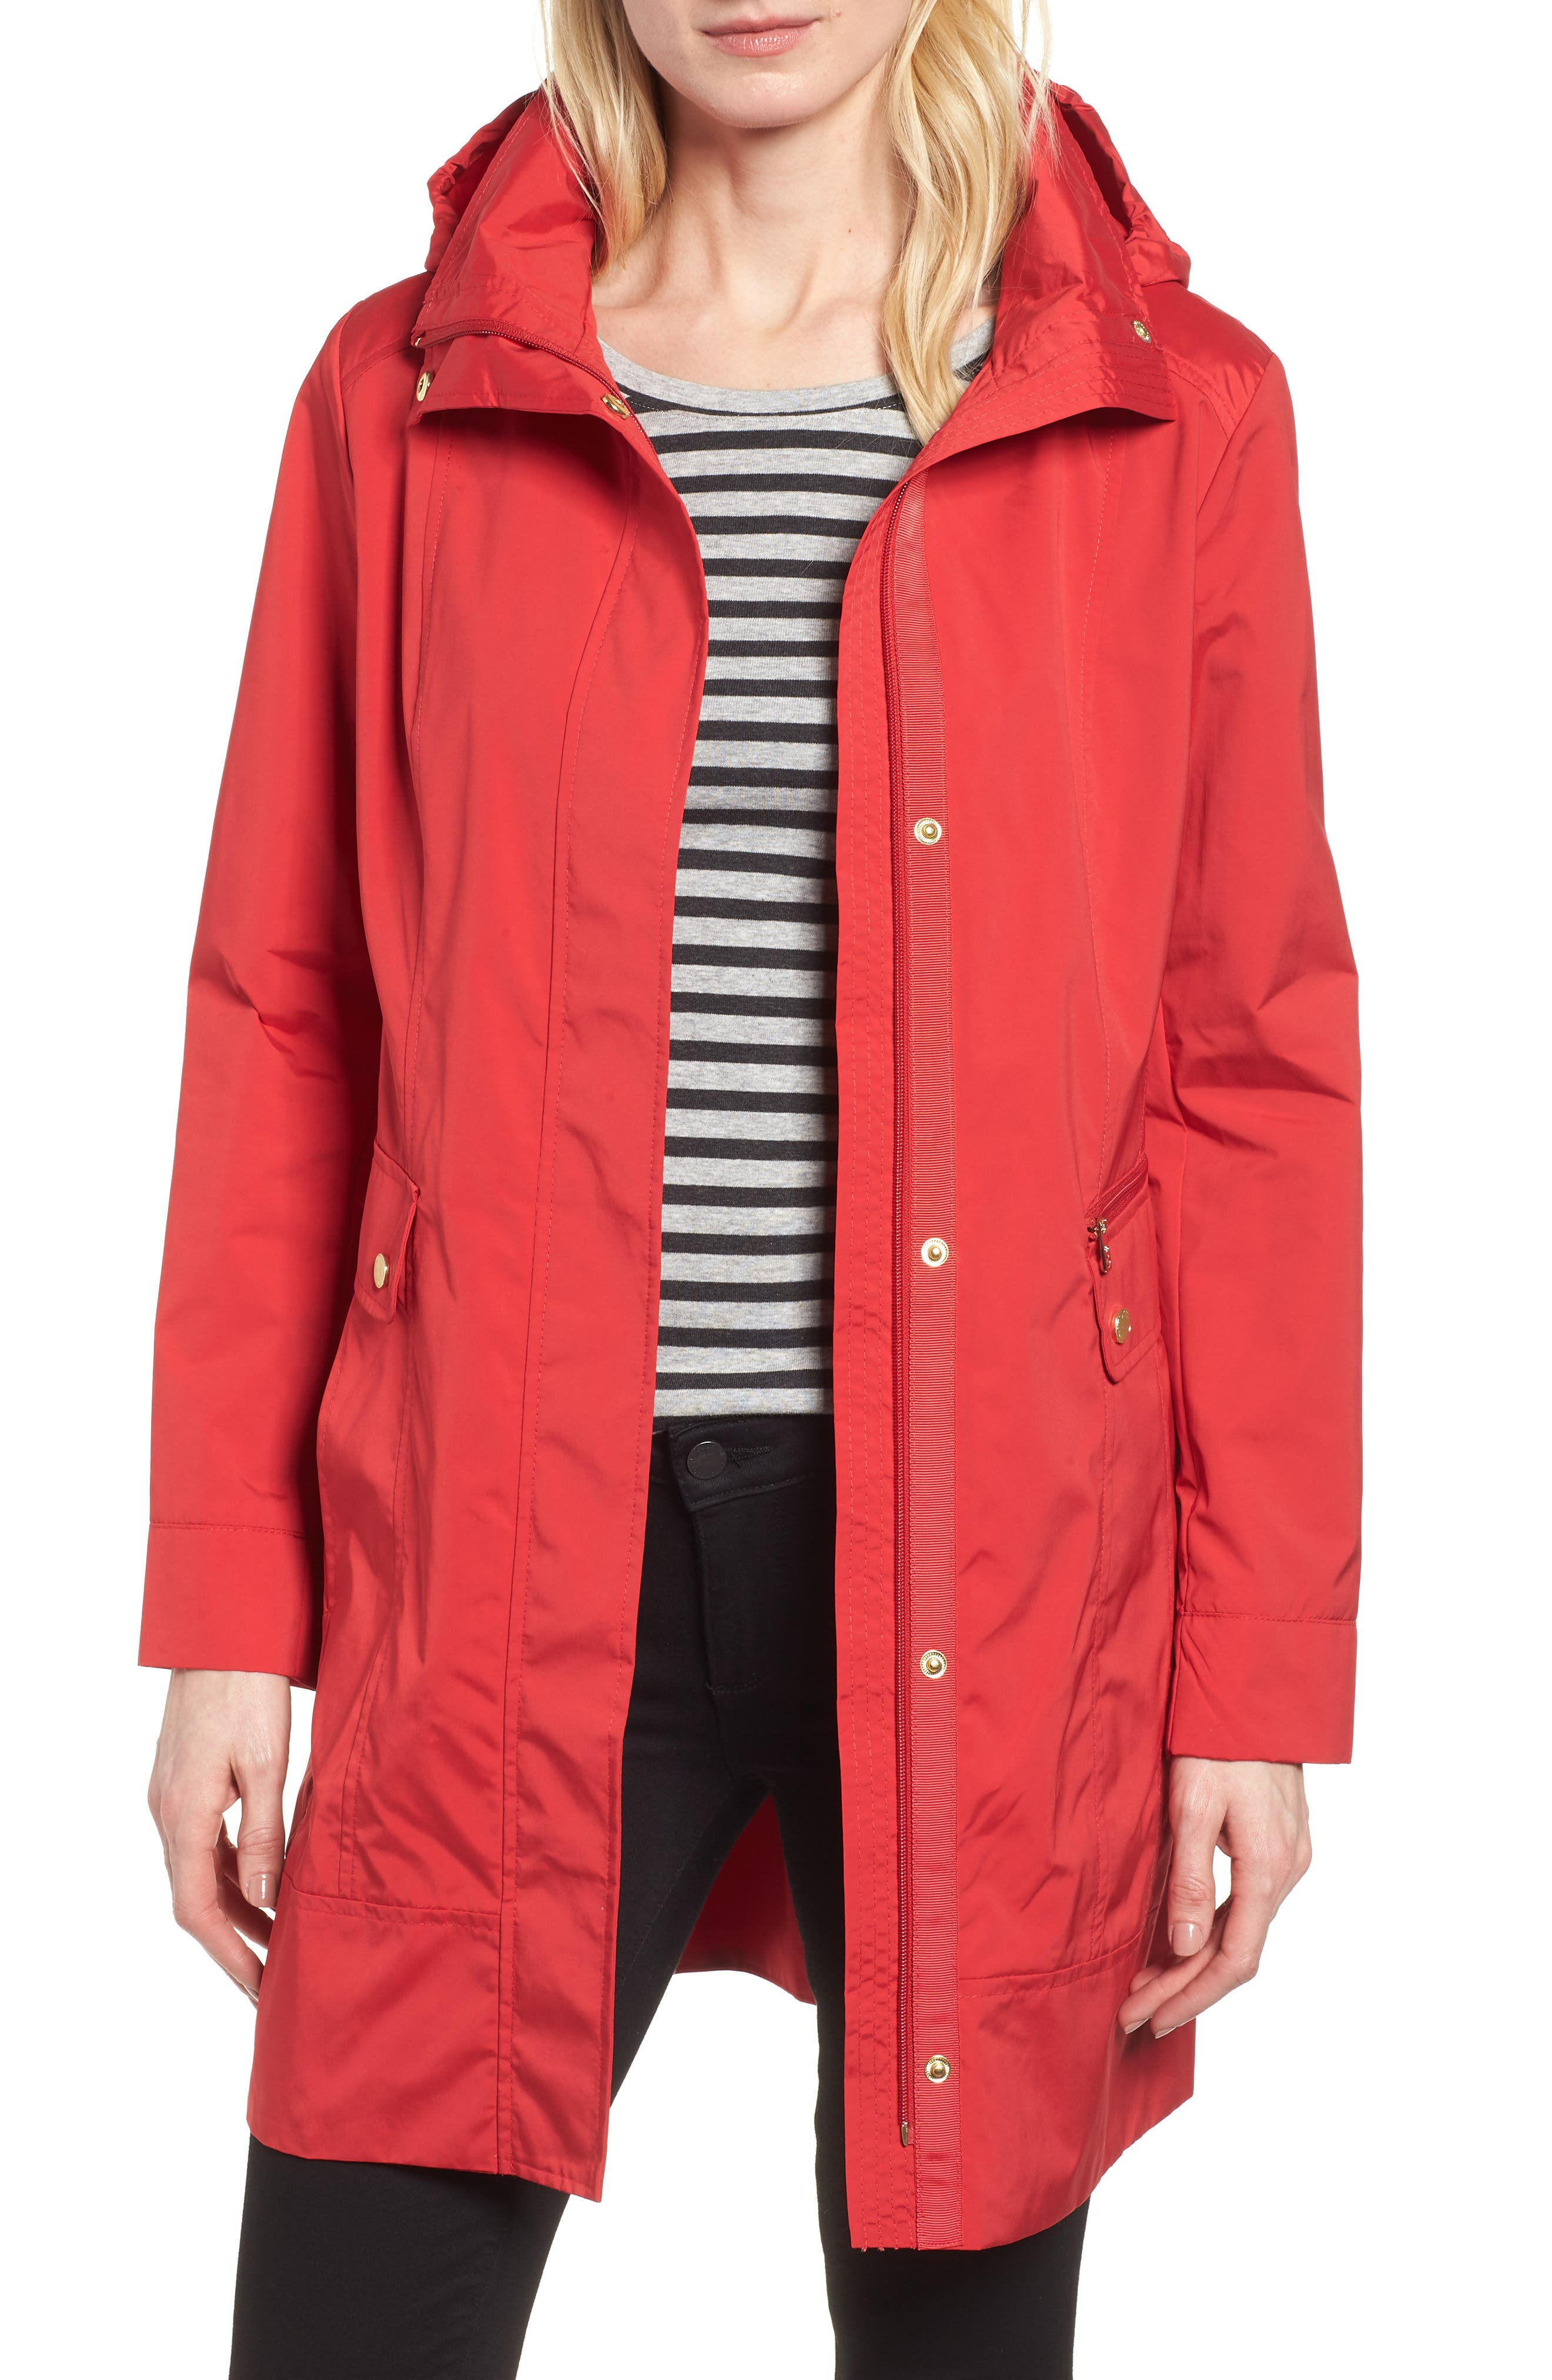 Back Bow Packable Hooded Raincoat,                         Main,                         color, Red